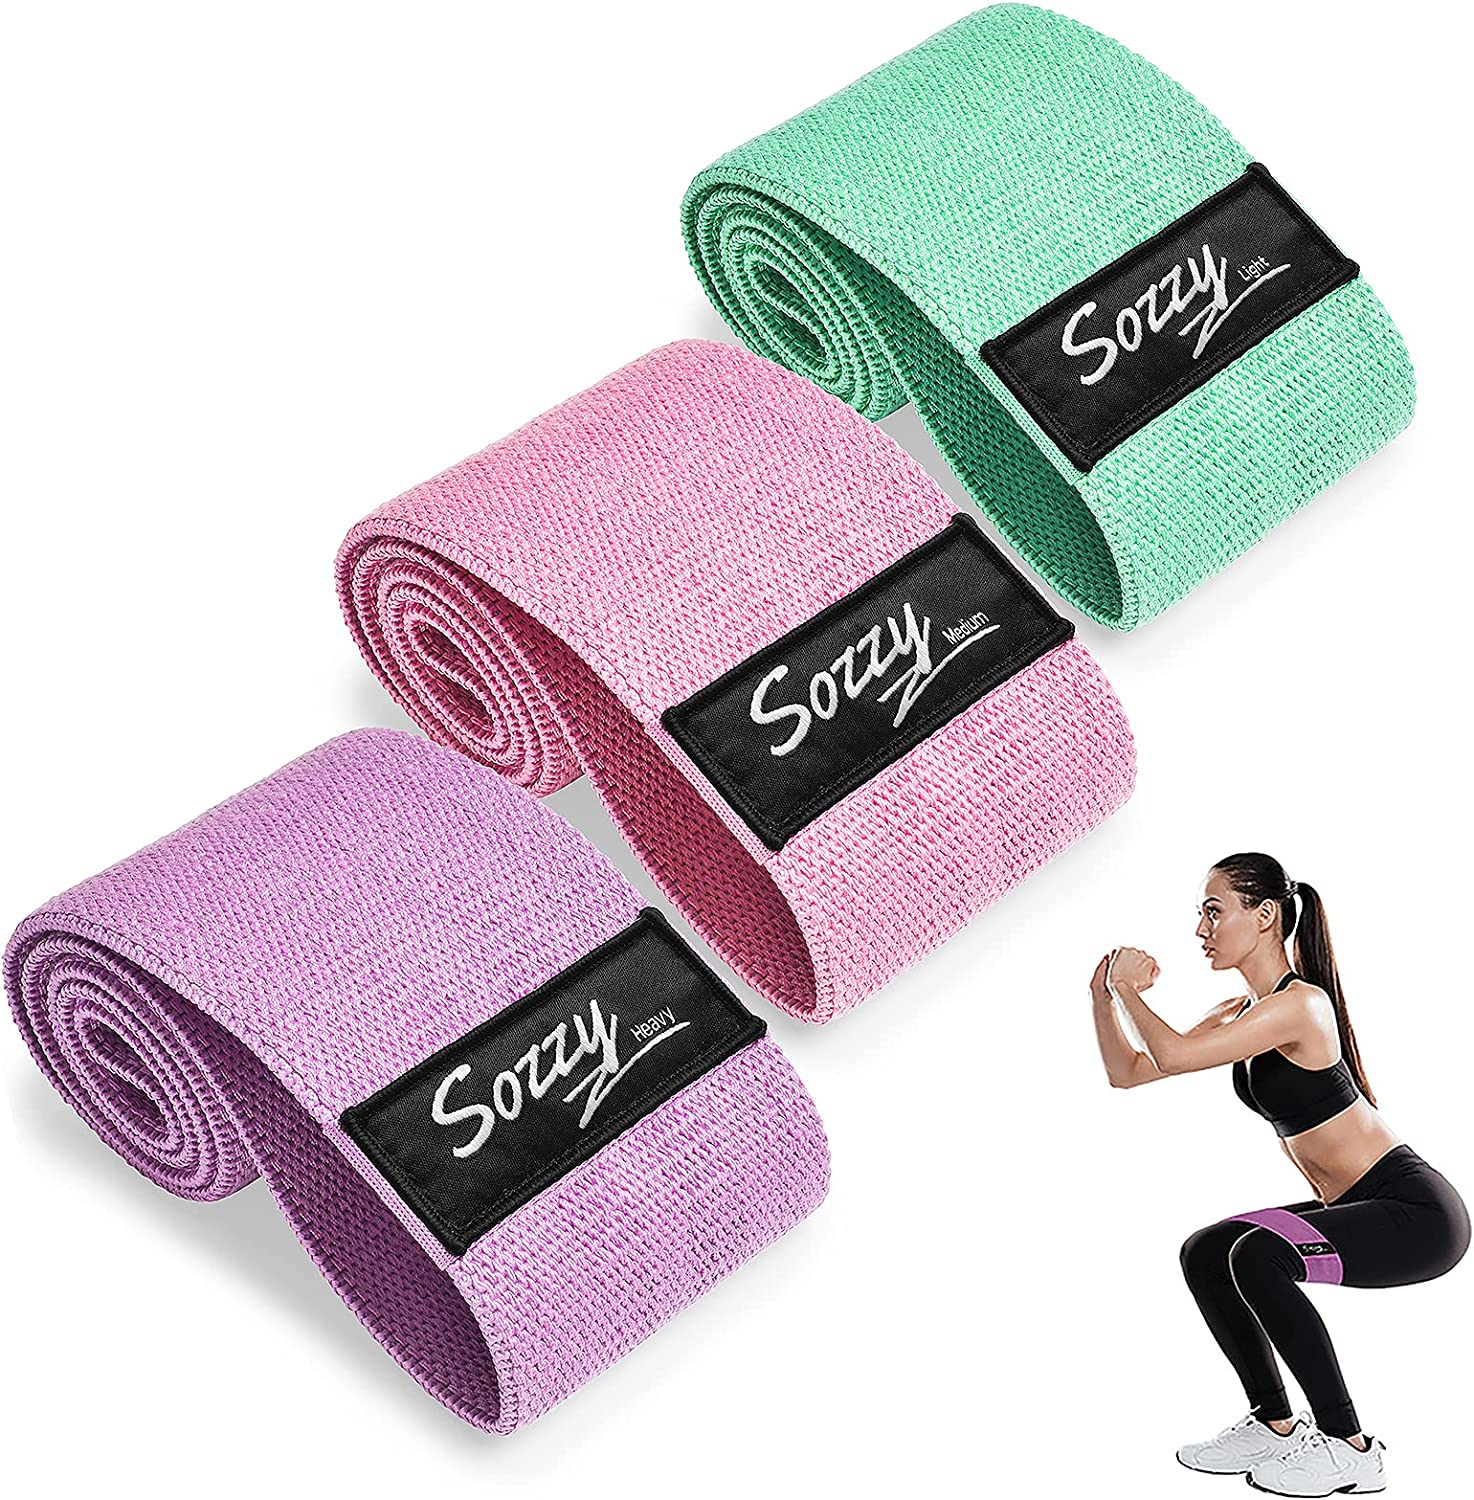 Workout Bands Fabric Sports Fitness Bands Stretch Resistance Loops ...